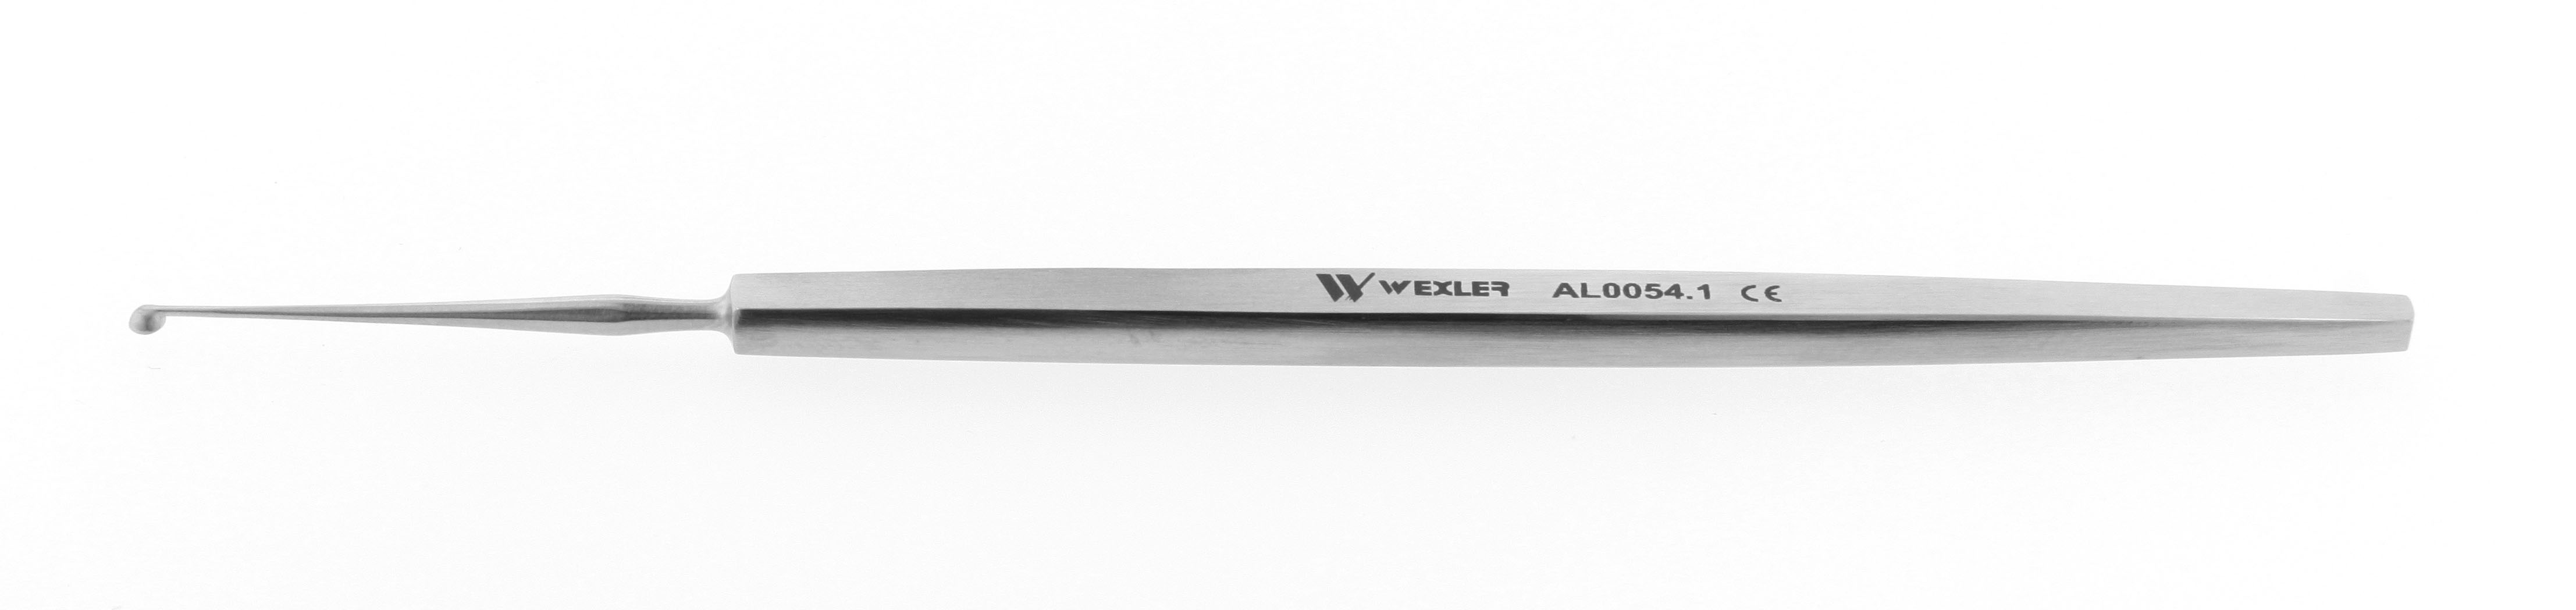 Meyerhoeffer Curette - Straight 2.5mm cup